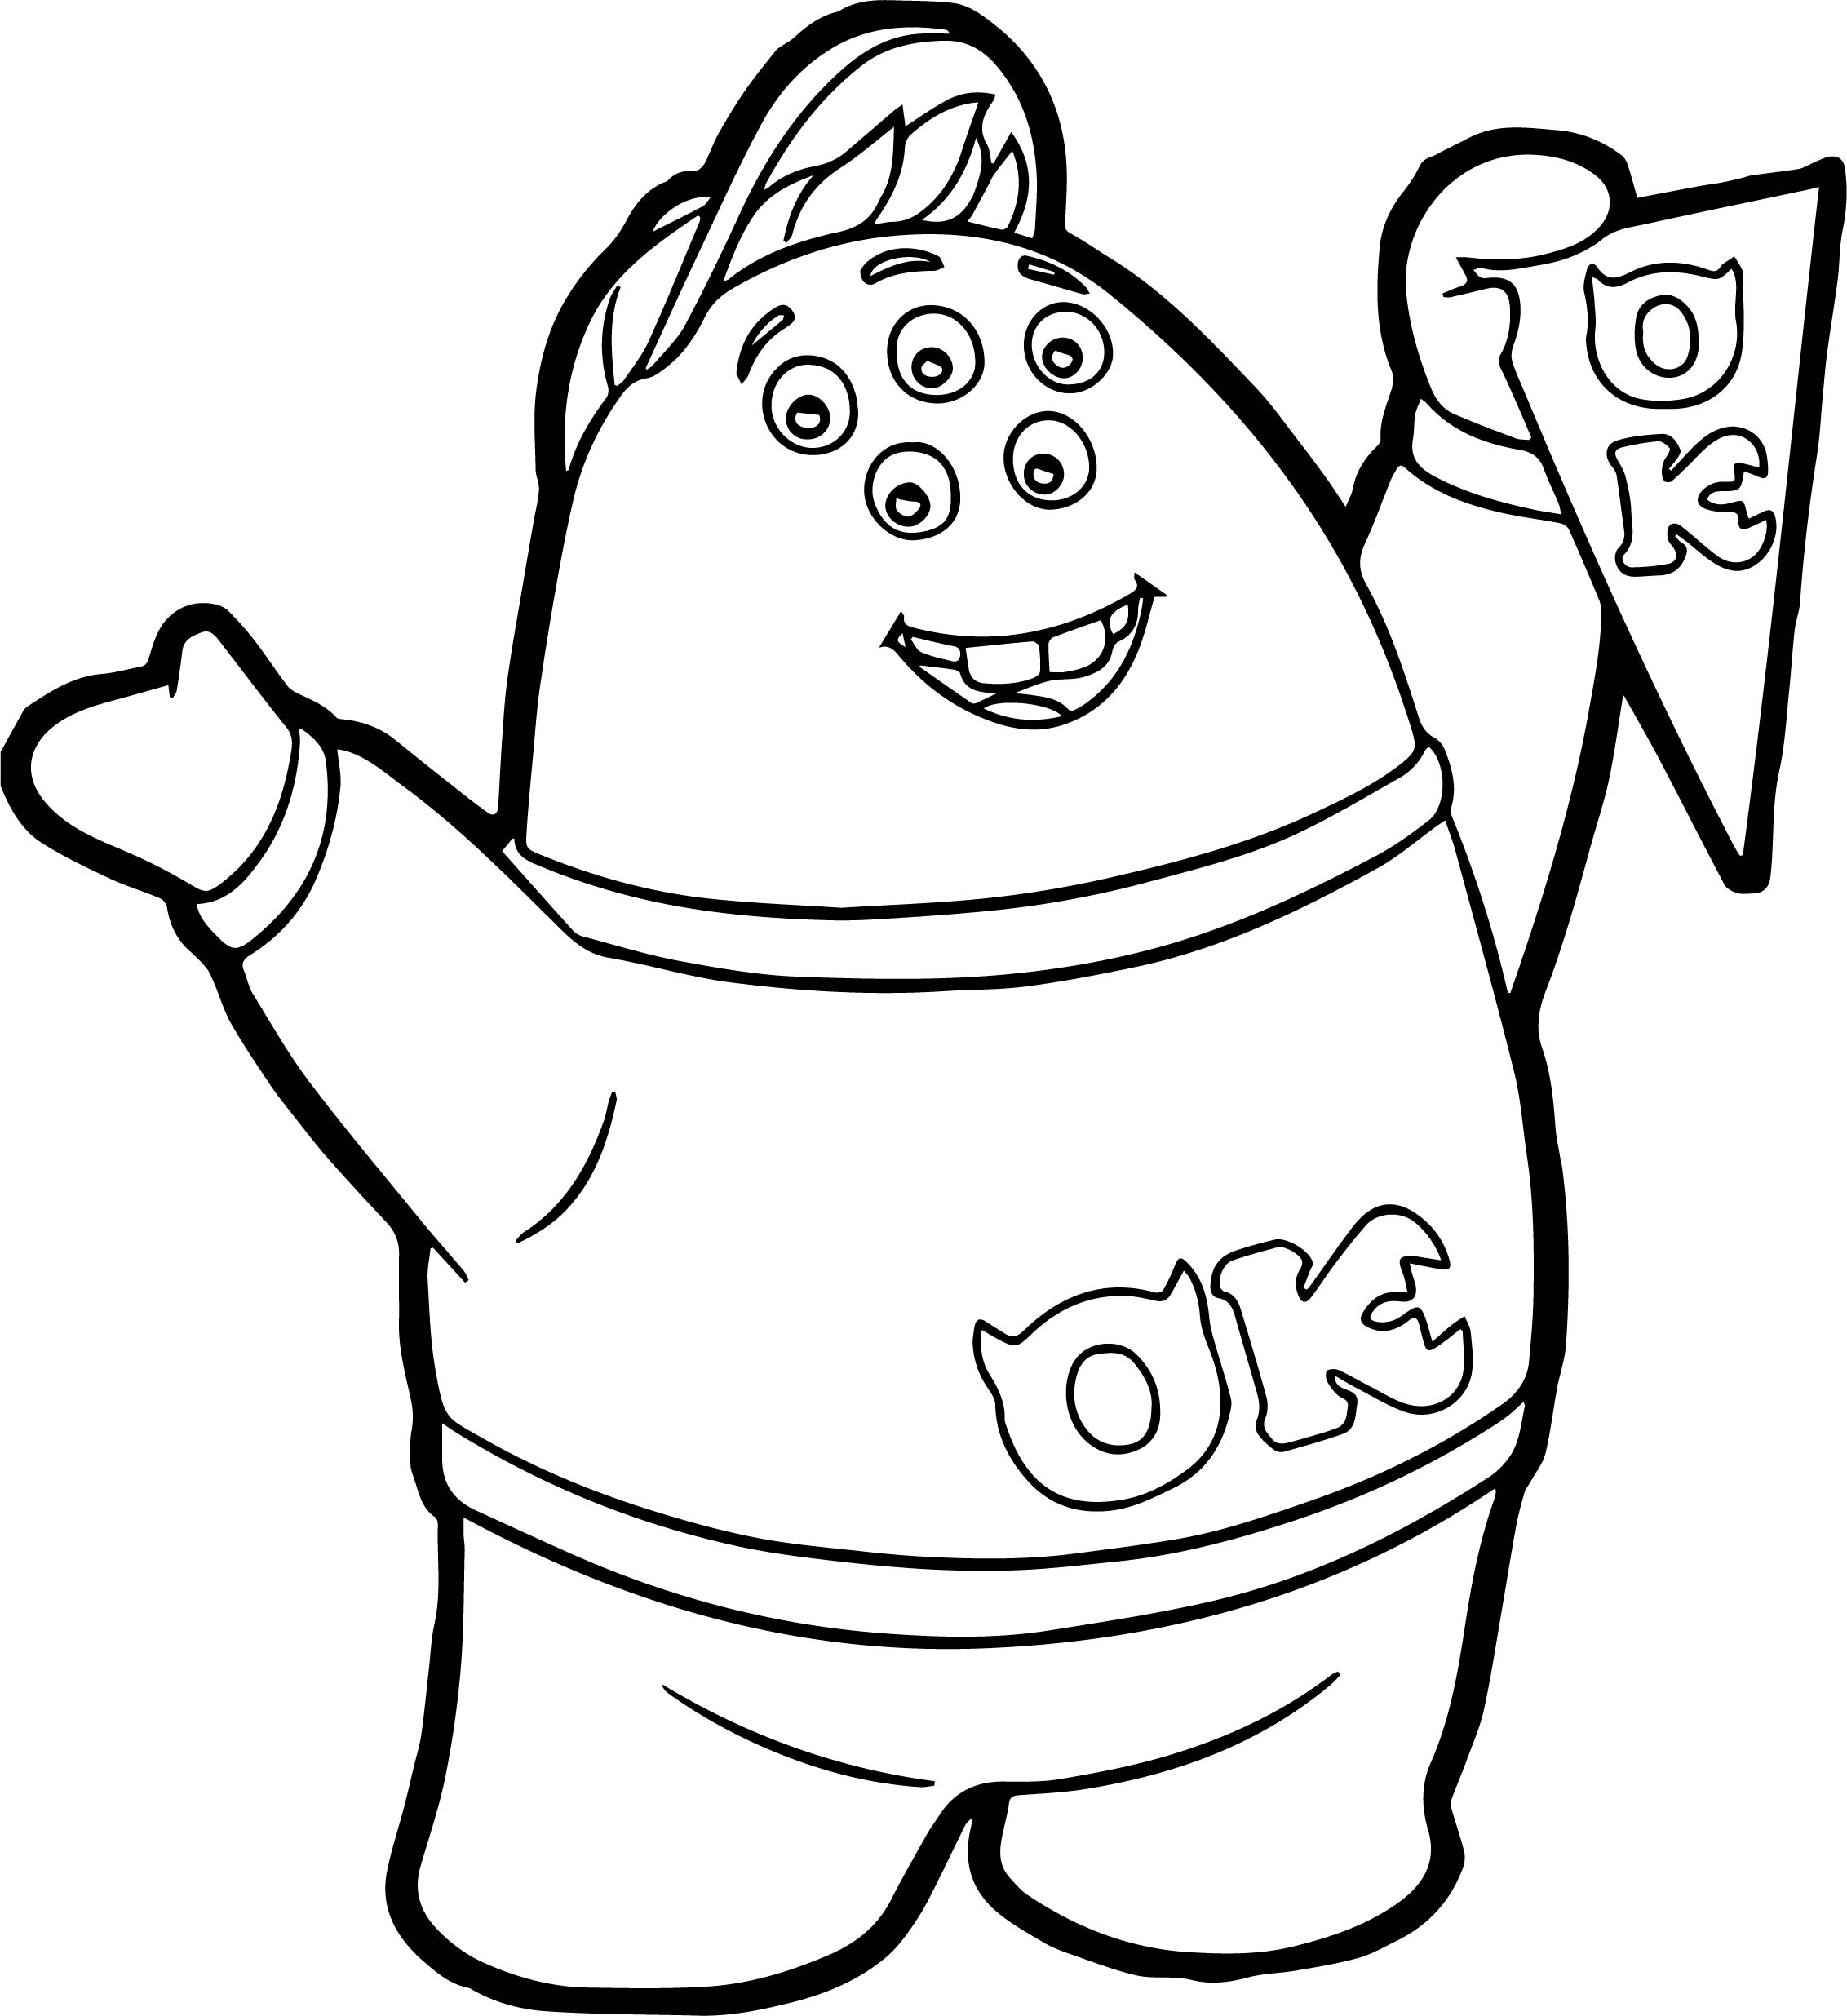 kappa mike coloring pages - photo#25